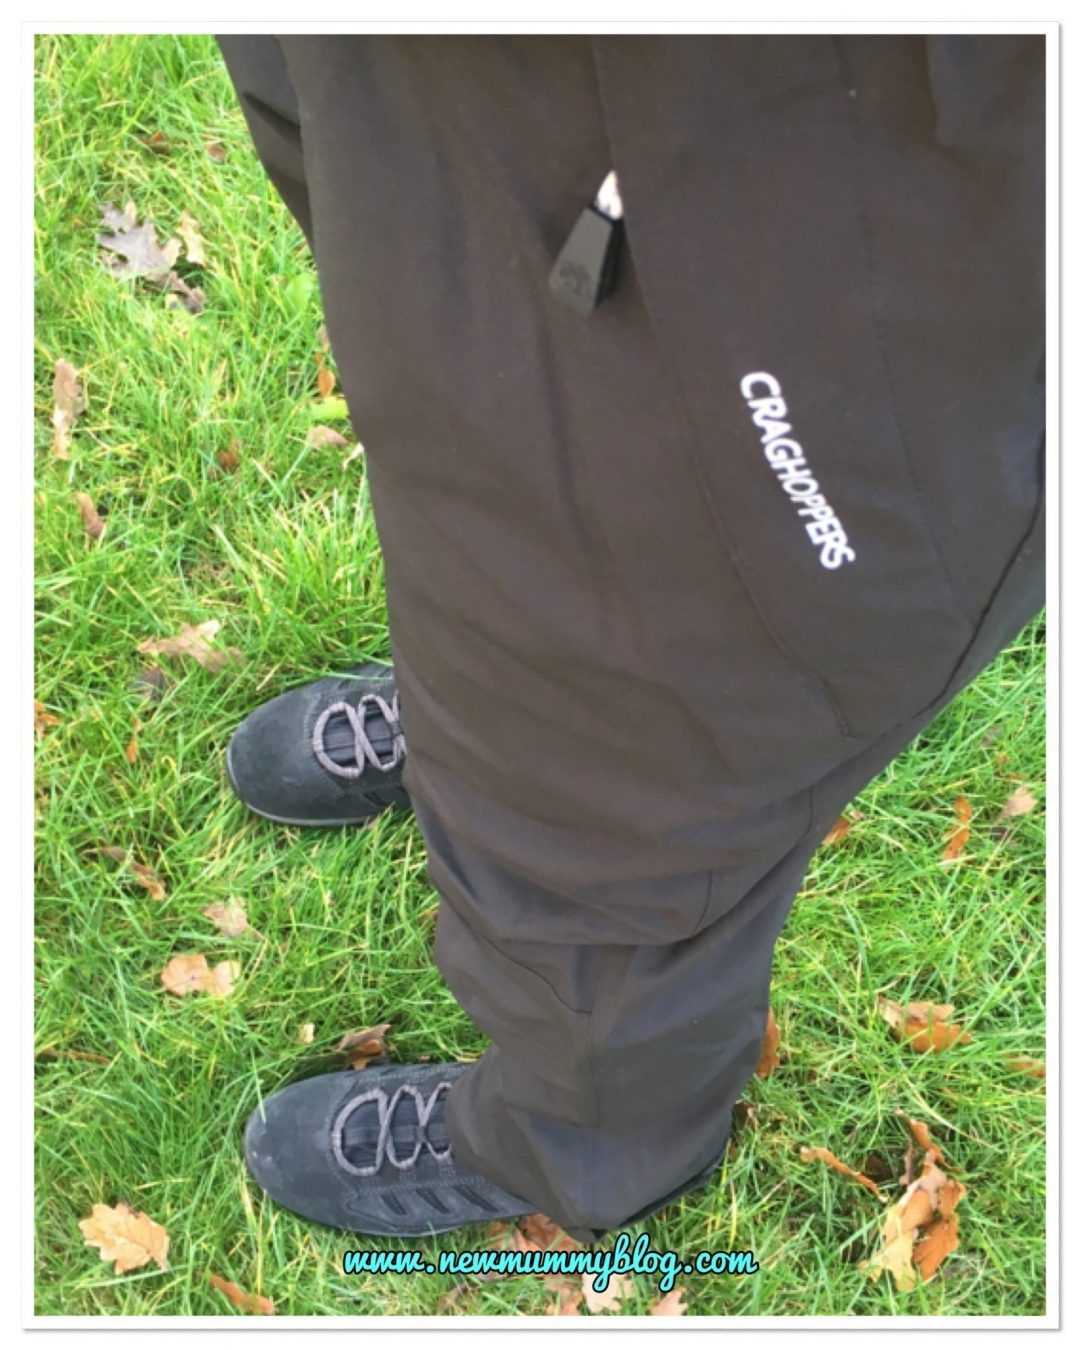 Men's outdoor wear from Blacks - Craghoppers waterproof trousers review